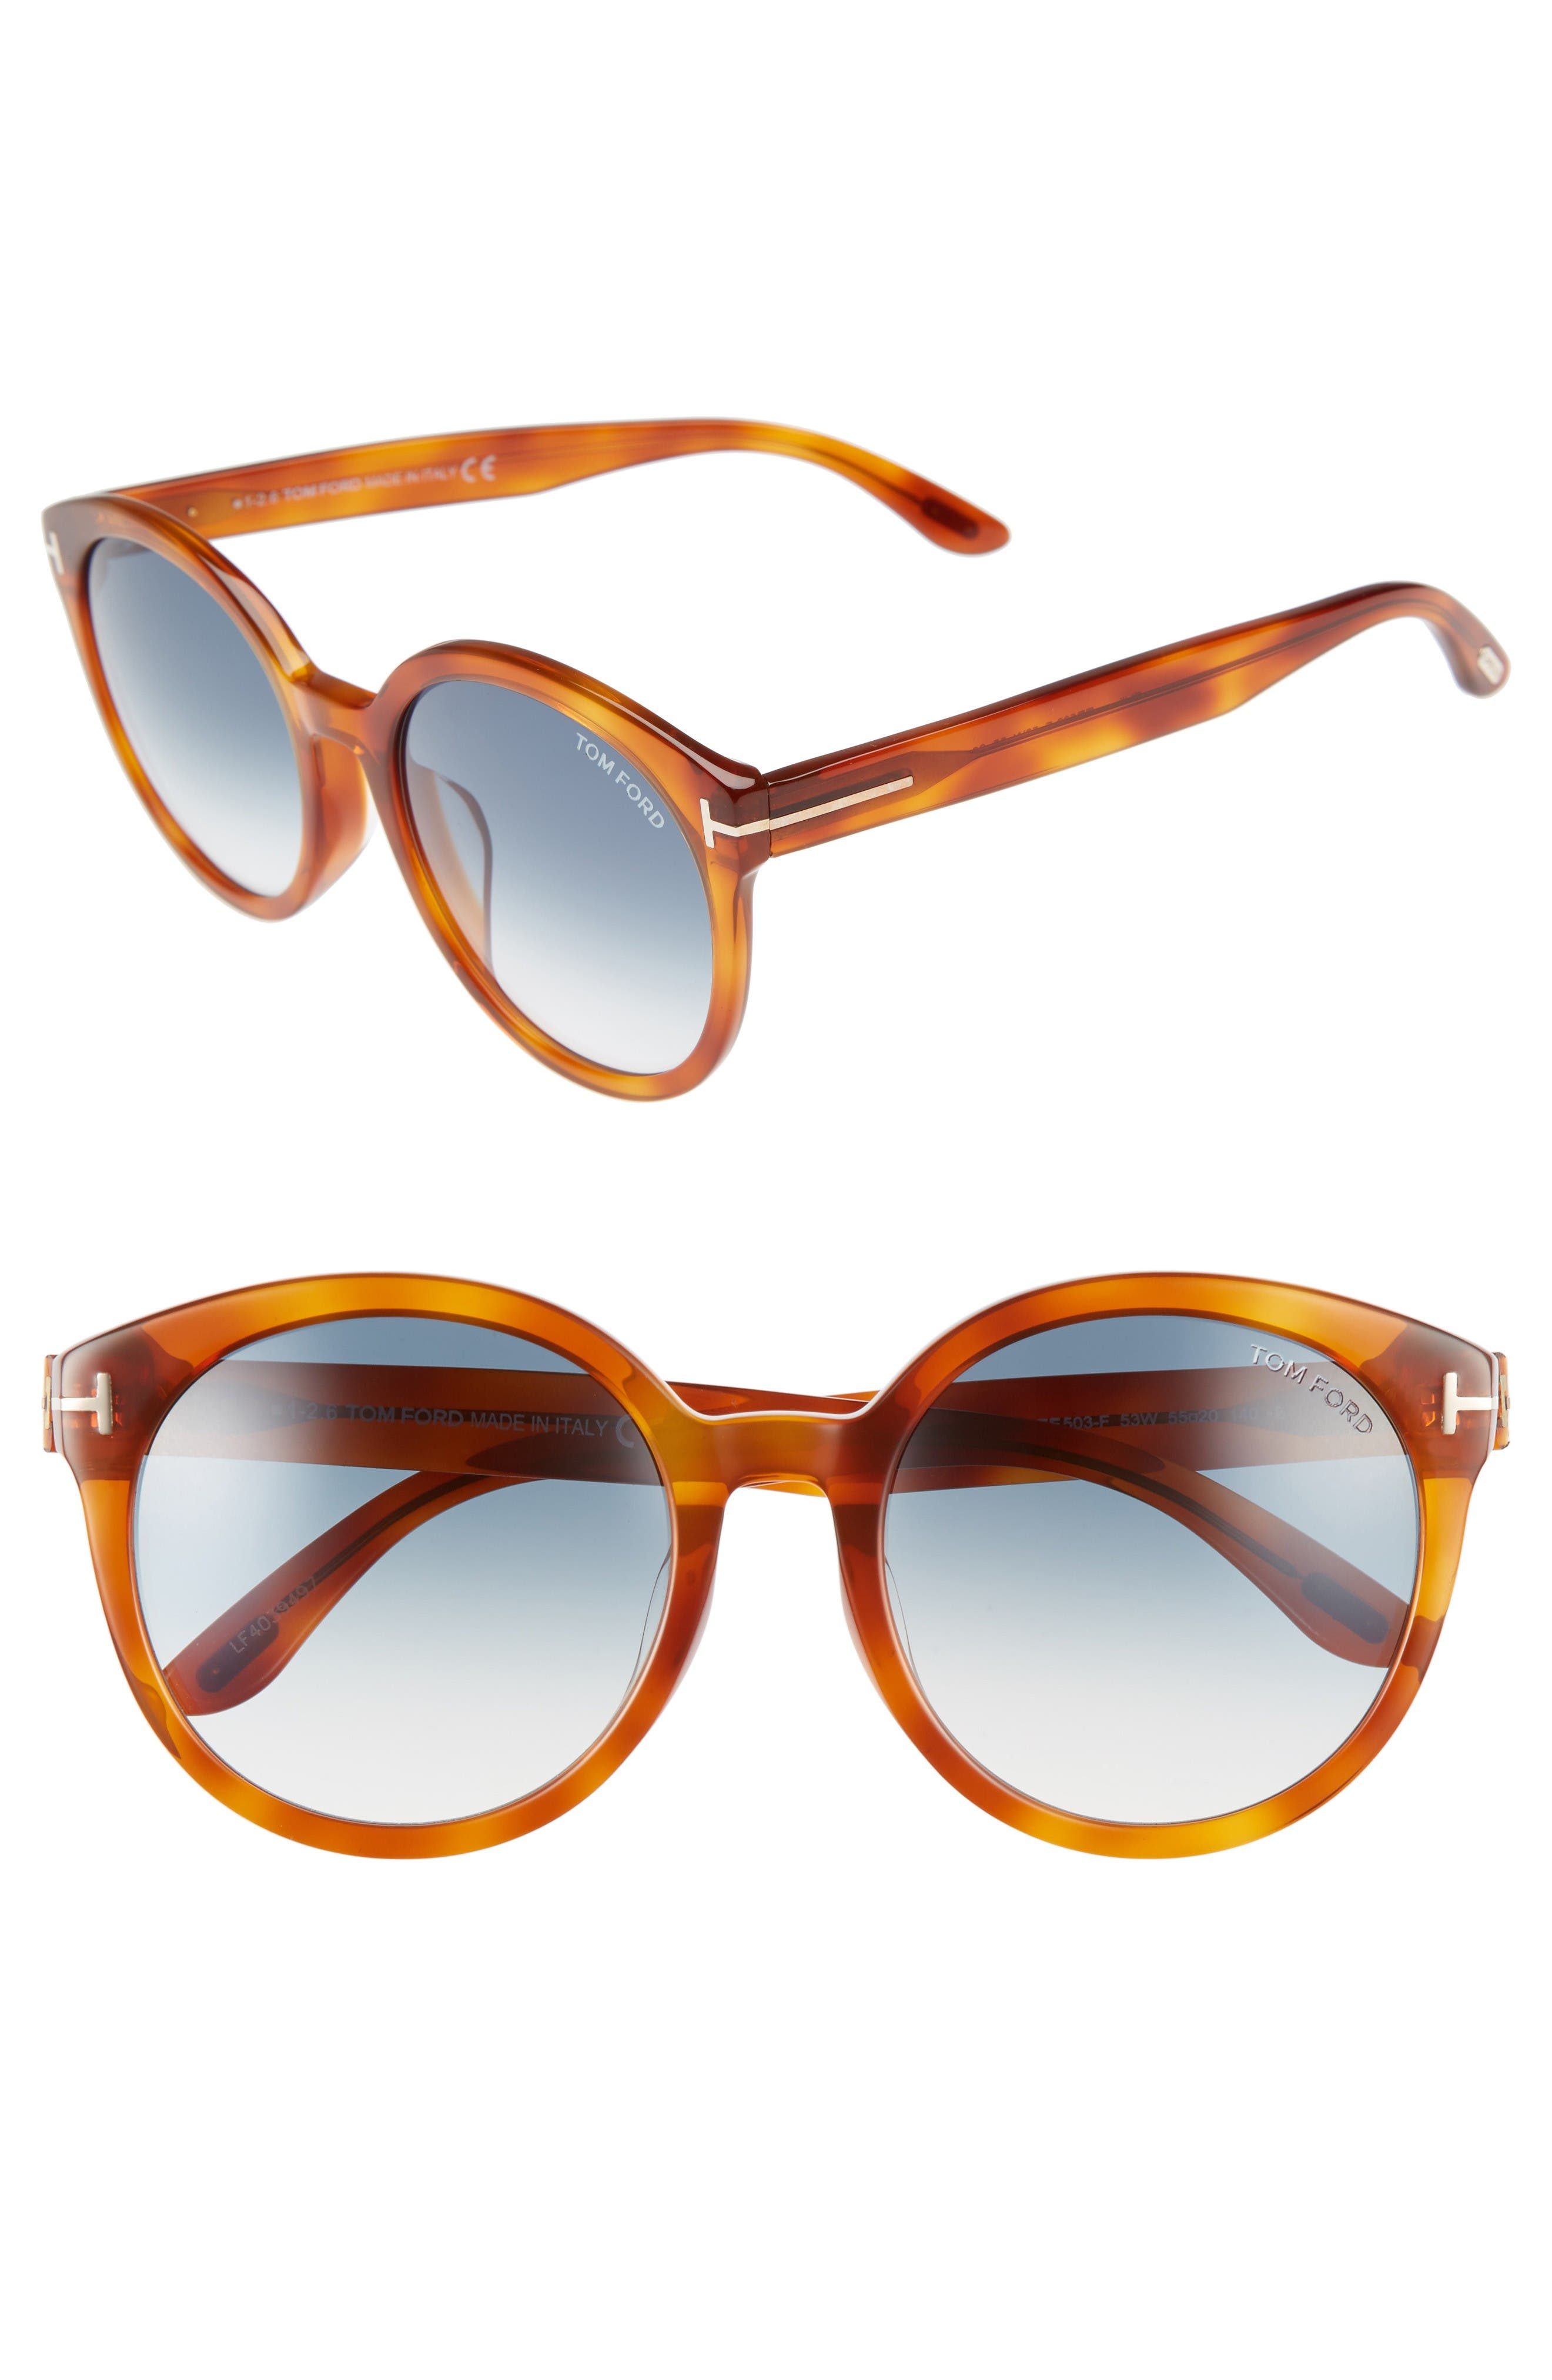 Tom Ford Philippa Special Fit 55mm Sunglasses